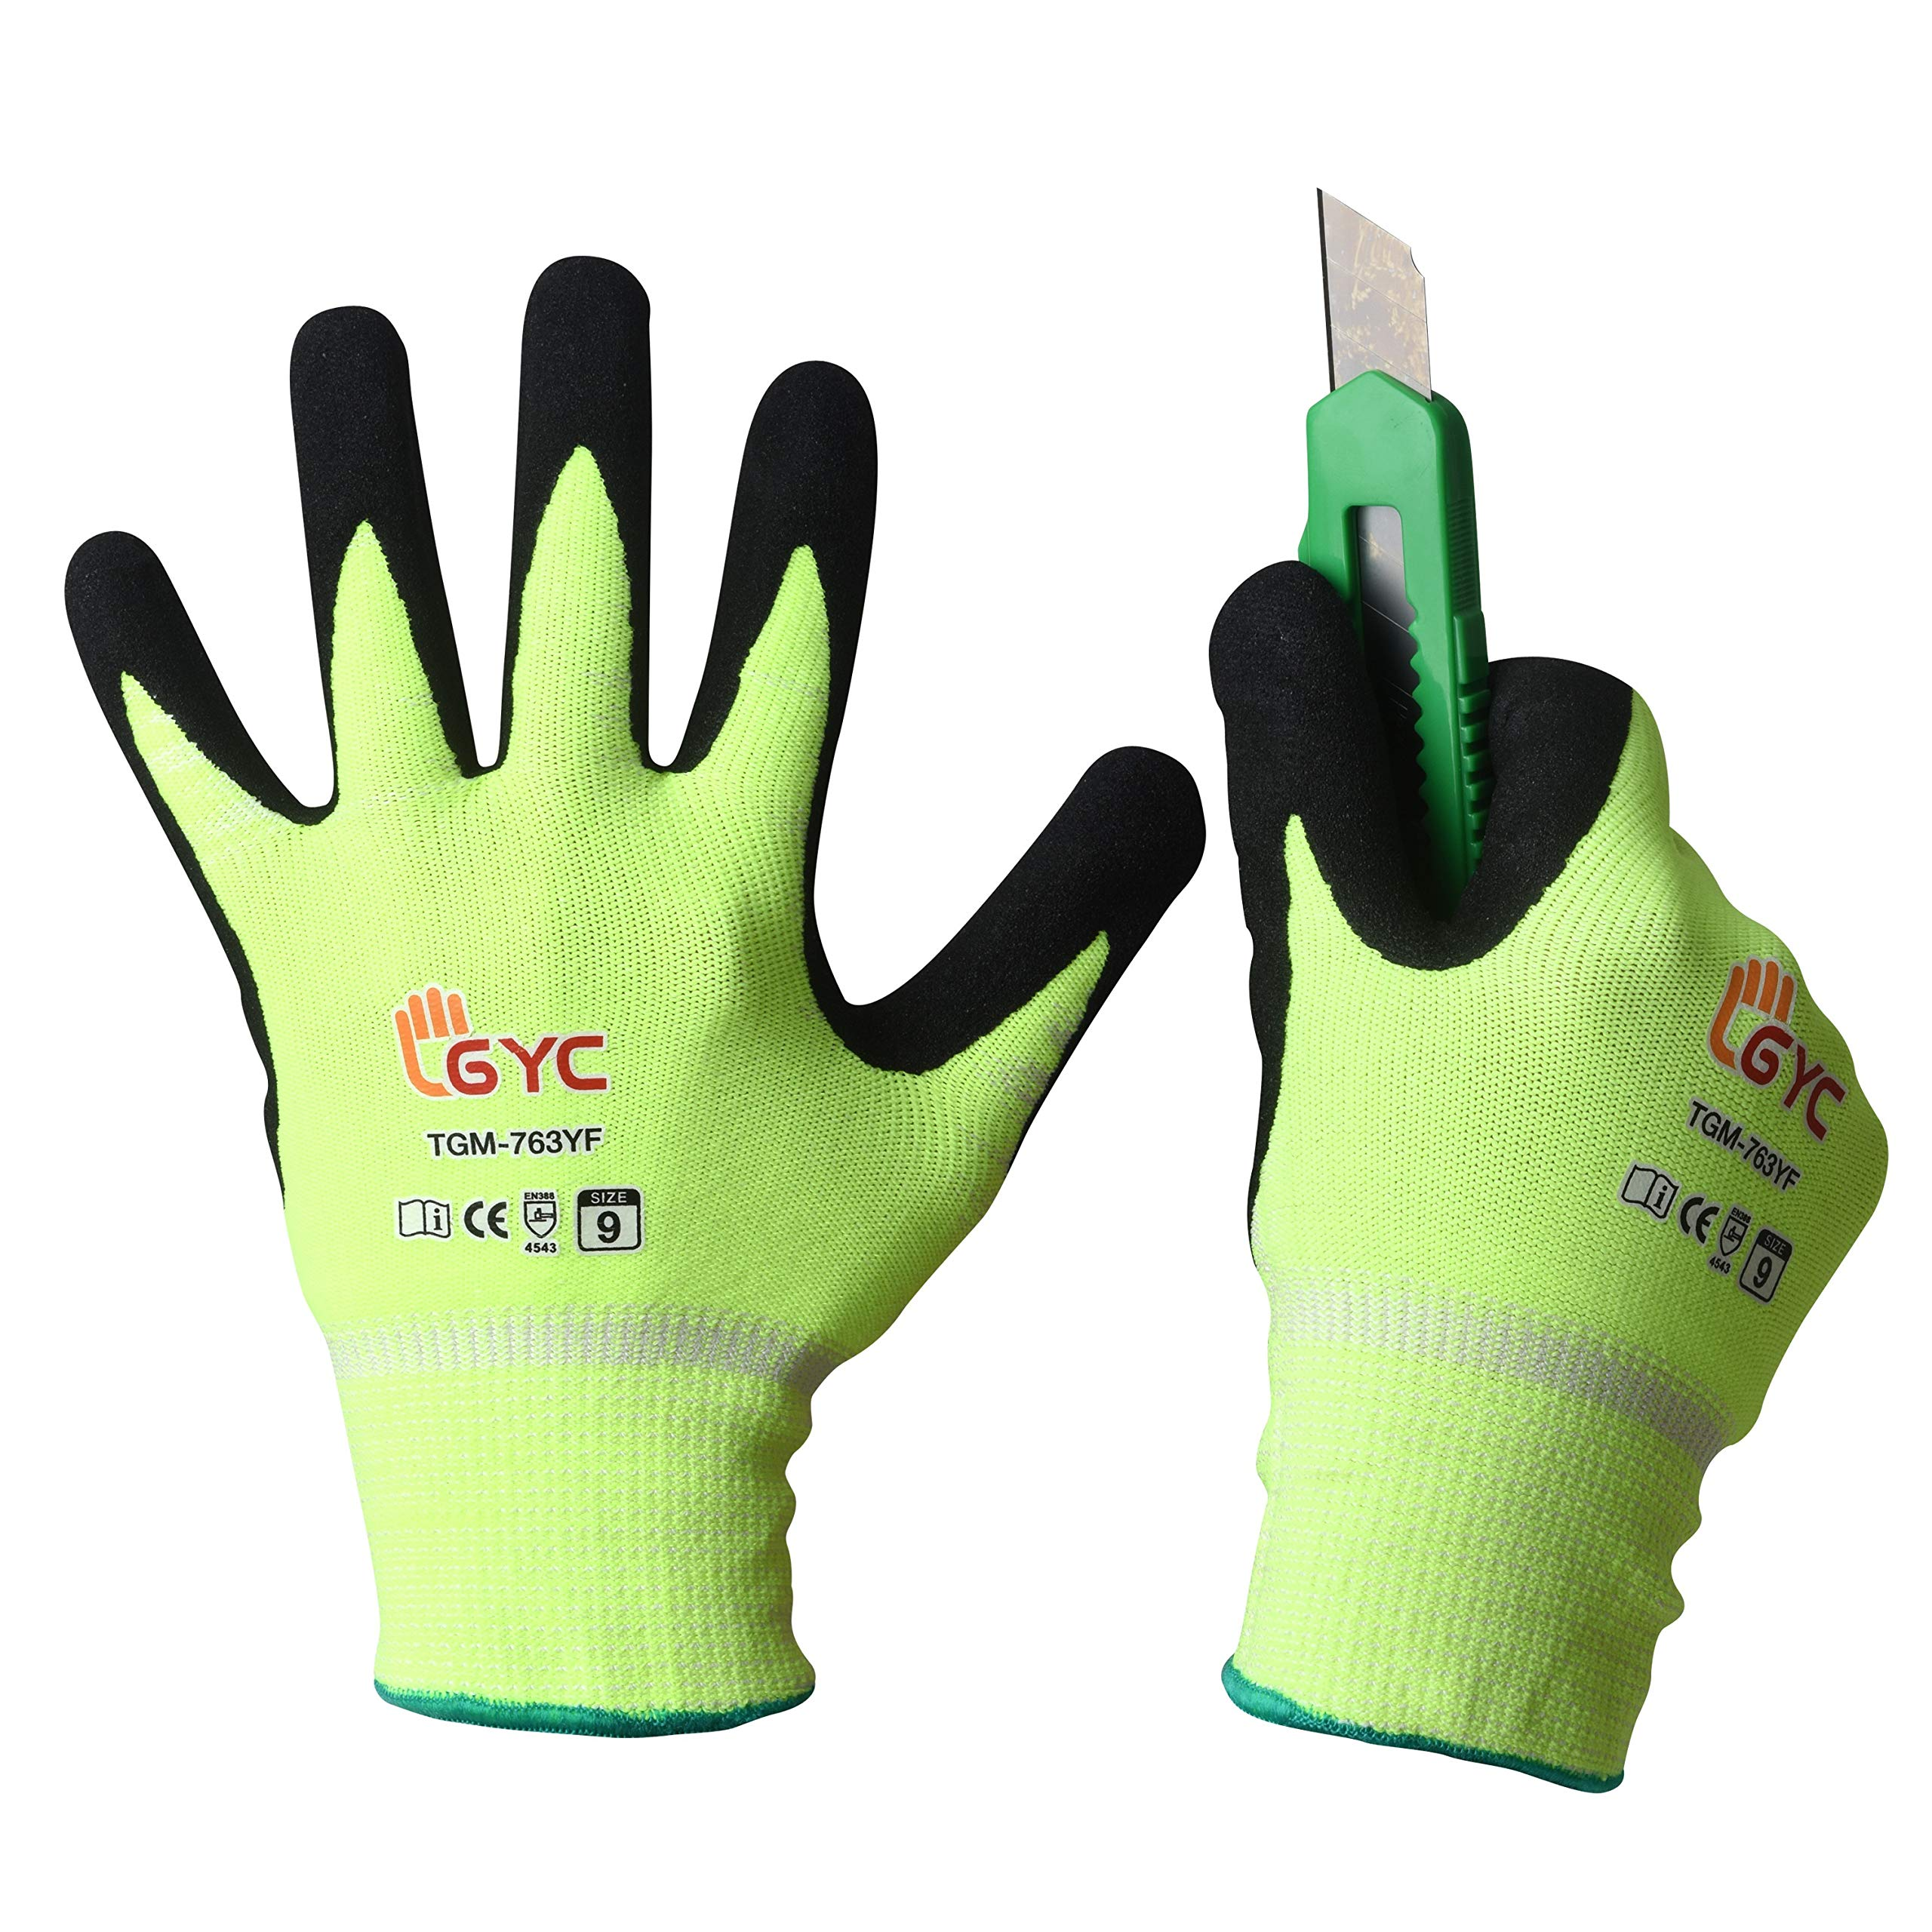 GYC Gloves Cut Resistant Gloves Safety Work Gloves - Level 5 Cut Protection, 10 Pairs Pack - High Performance Dexterity & Breathability, Comfortable(TGM-763YF/ MEDIUM, 10 Pairs)